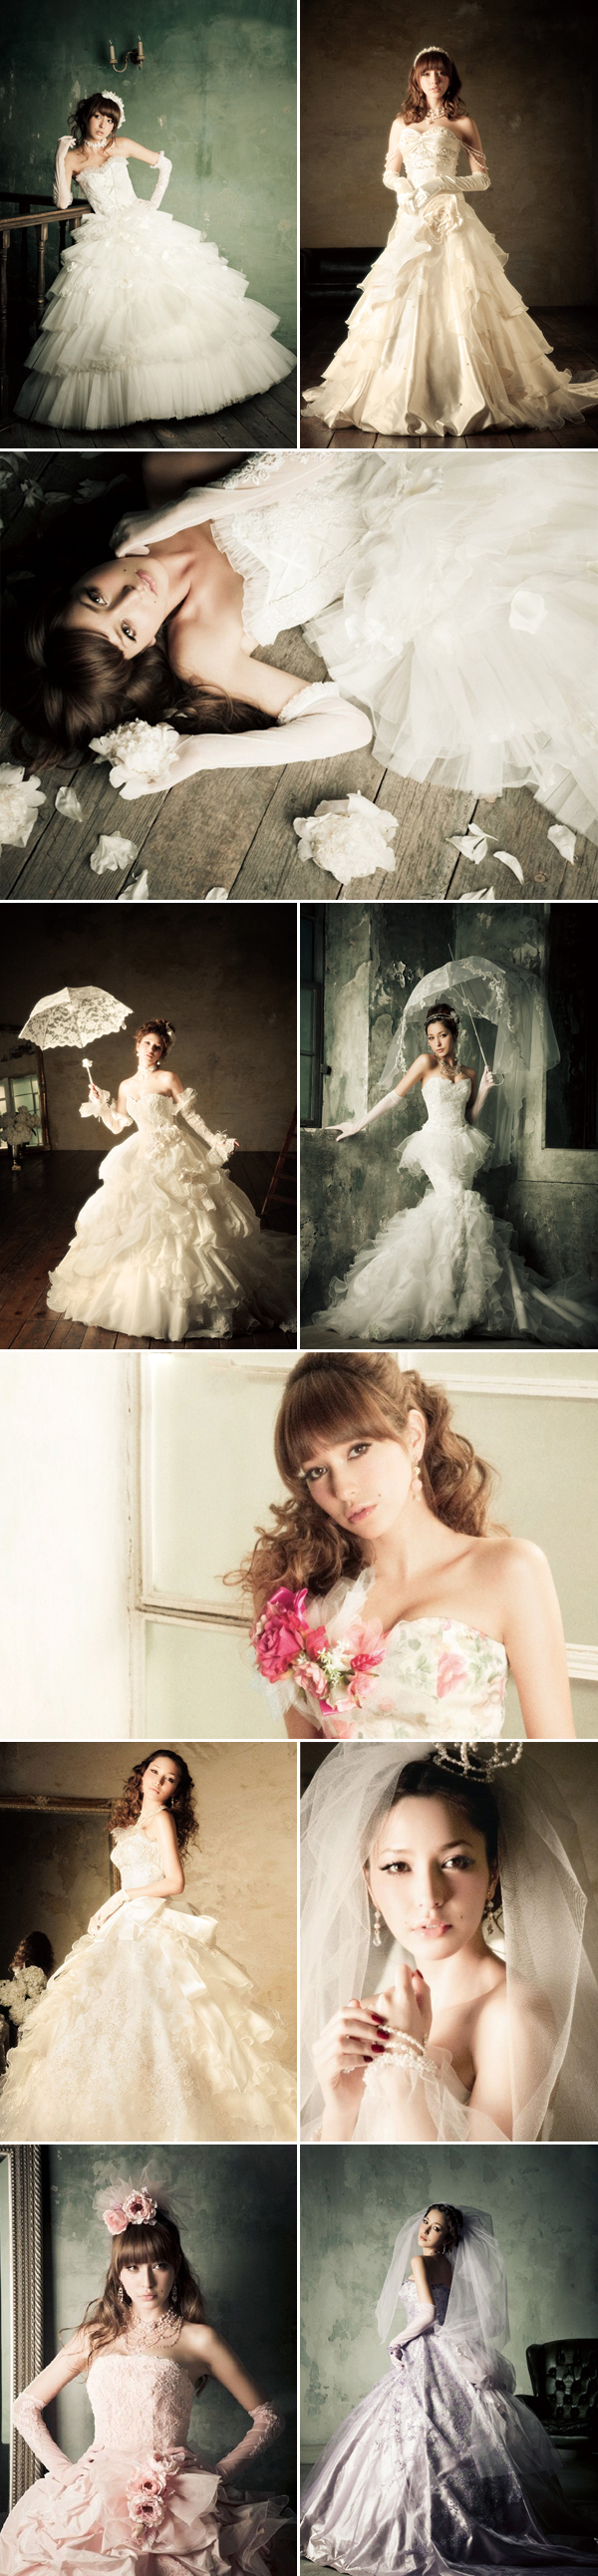 30 Adorable Japanese Bridal Gowns - Praise Wedding